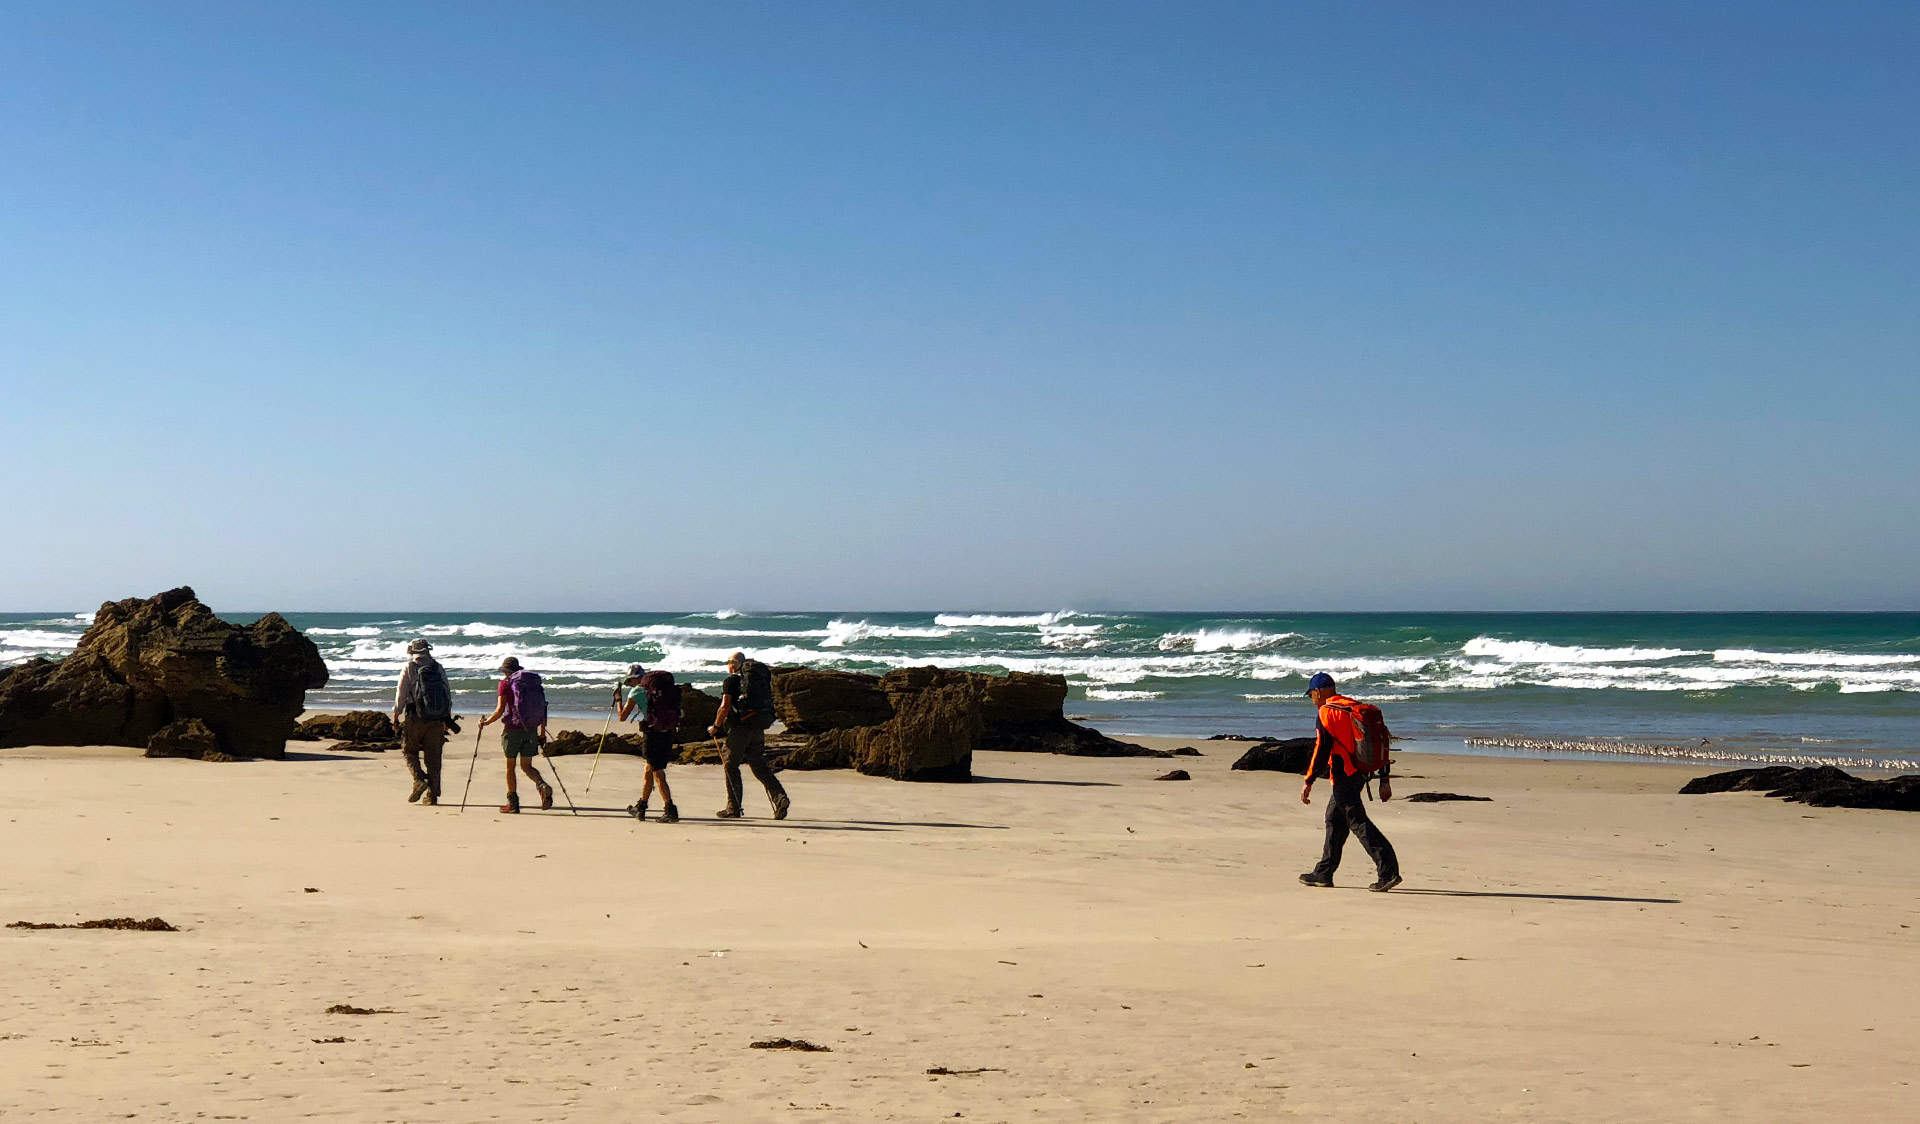 A group of four hikers walk along the beach at Discovery Bay as part of the Great South West Walk